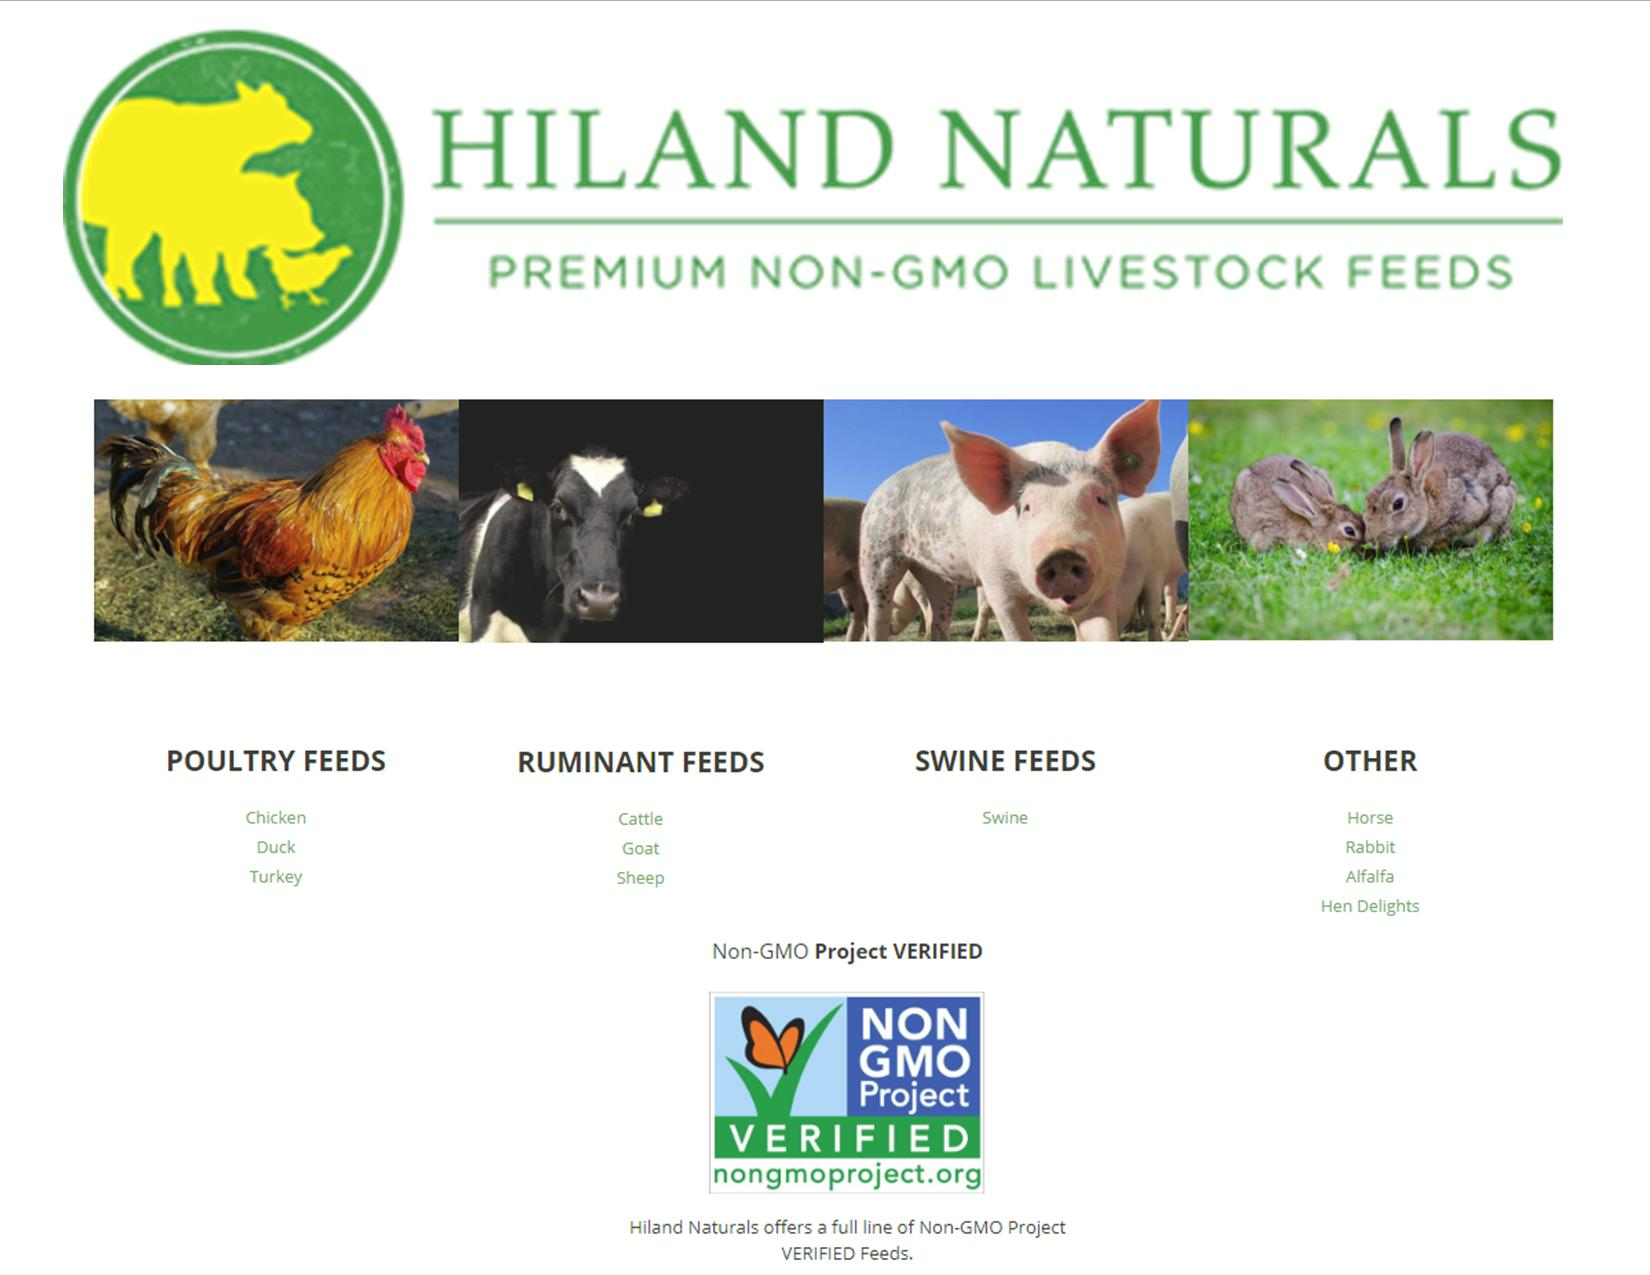 slideshow/Highland naturals Poster finished.jpg